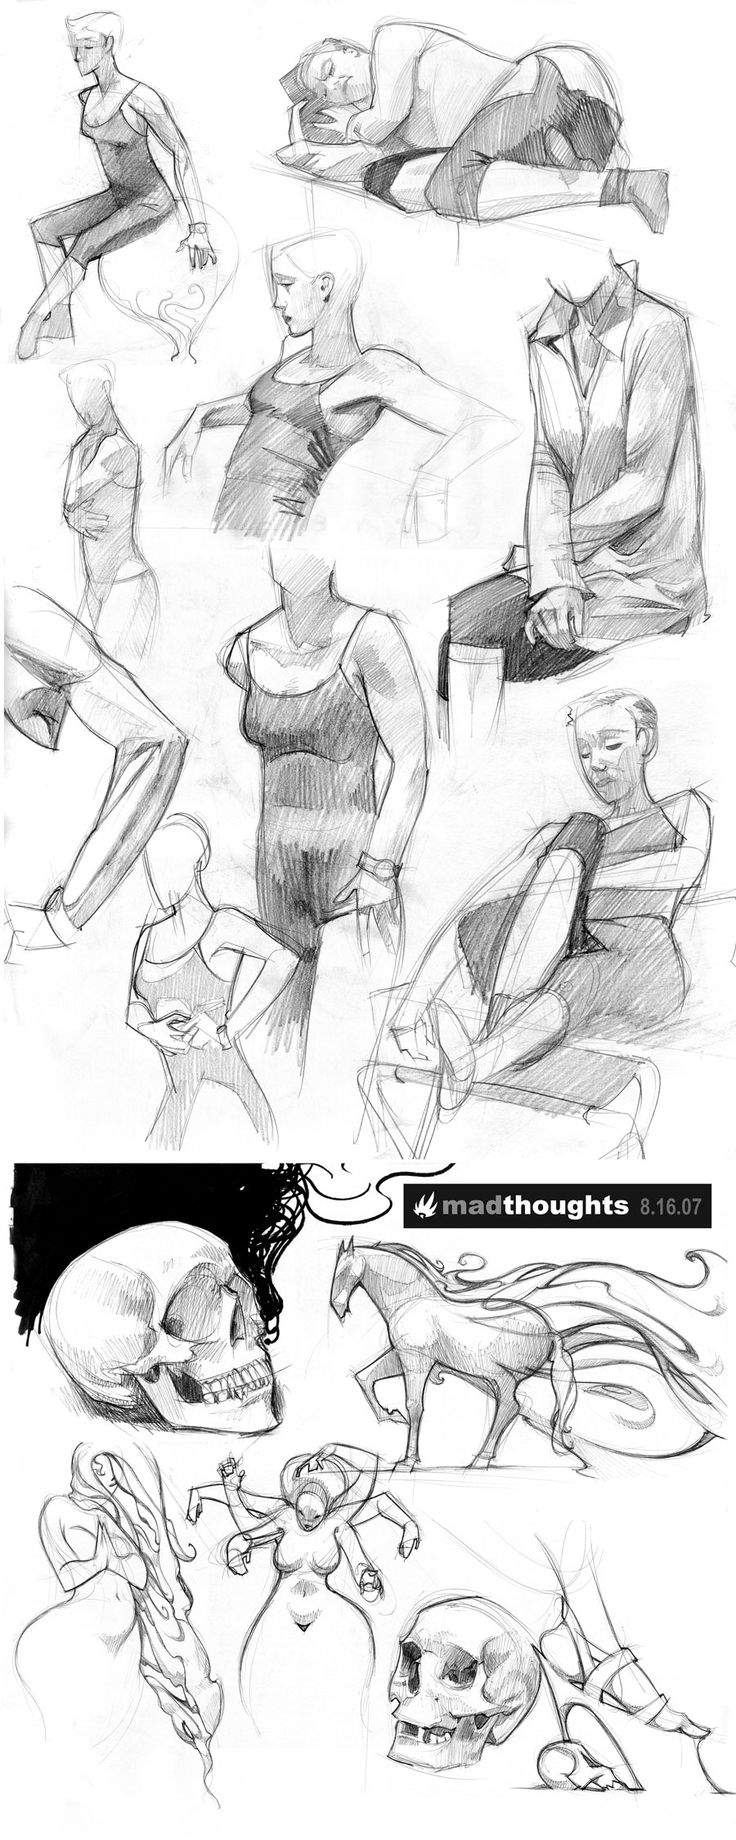 madThoughts 4 by biz02 on deviantART